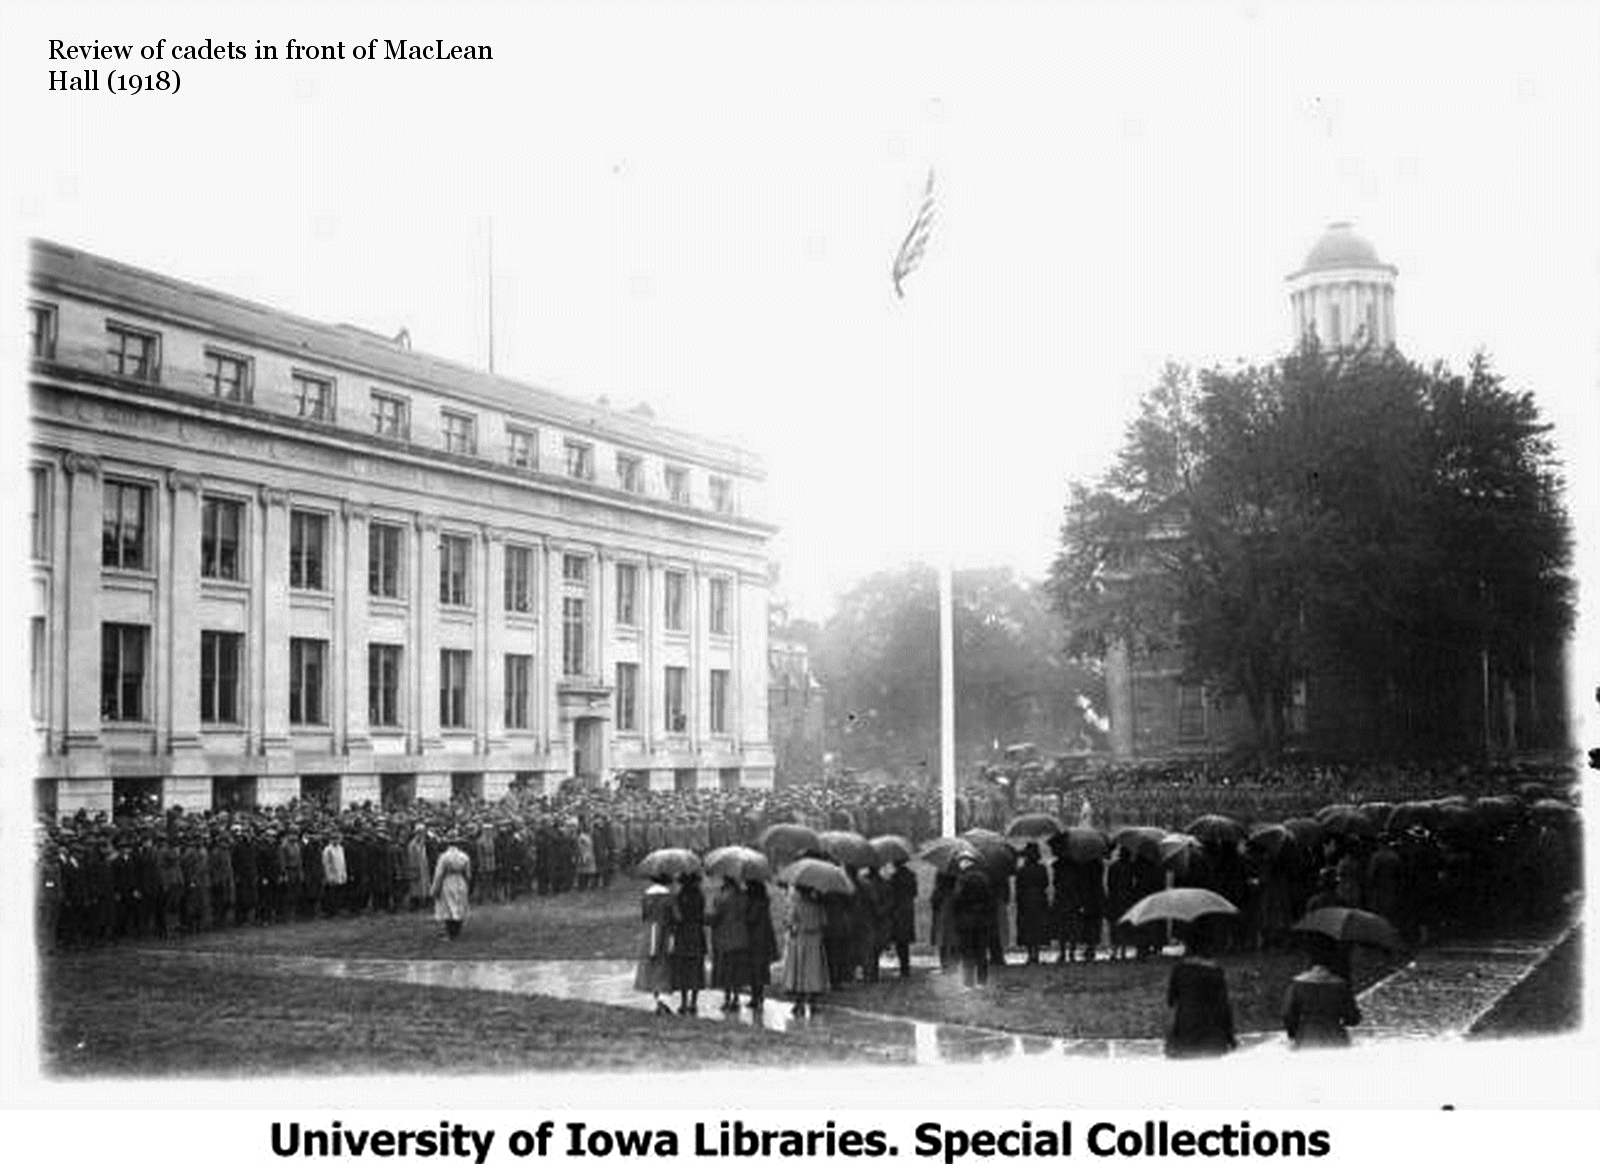 Military Review in front of MacLean Hall - 1918